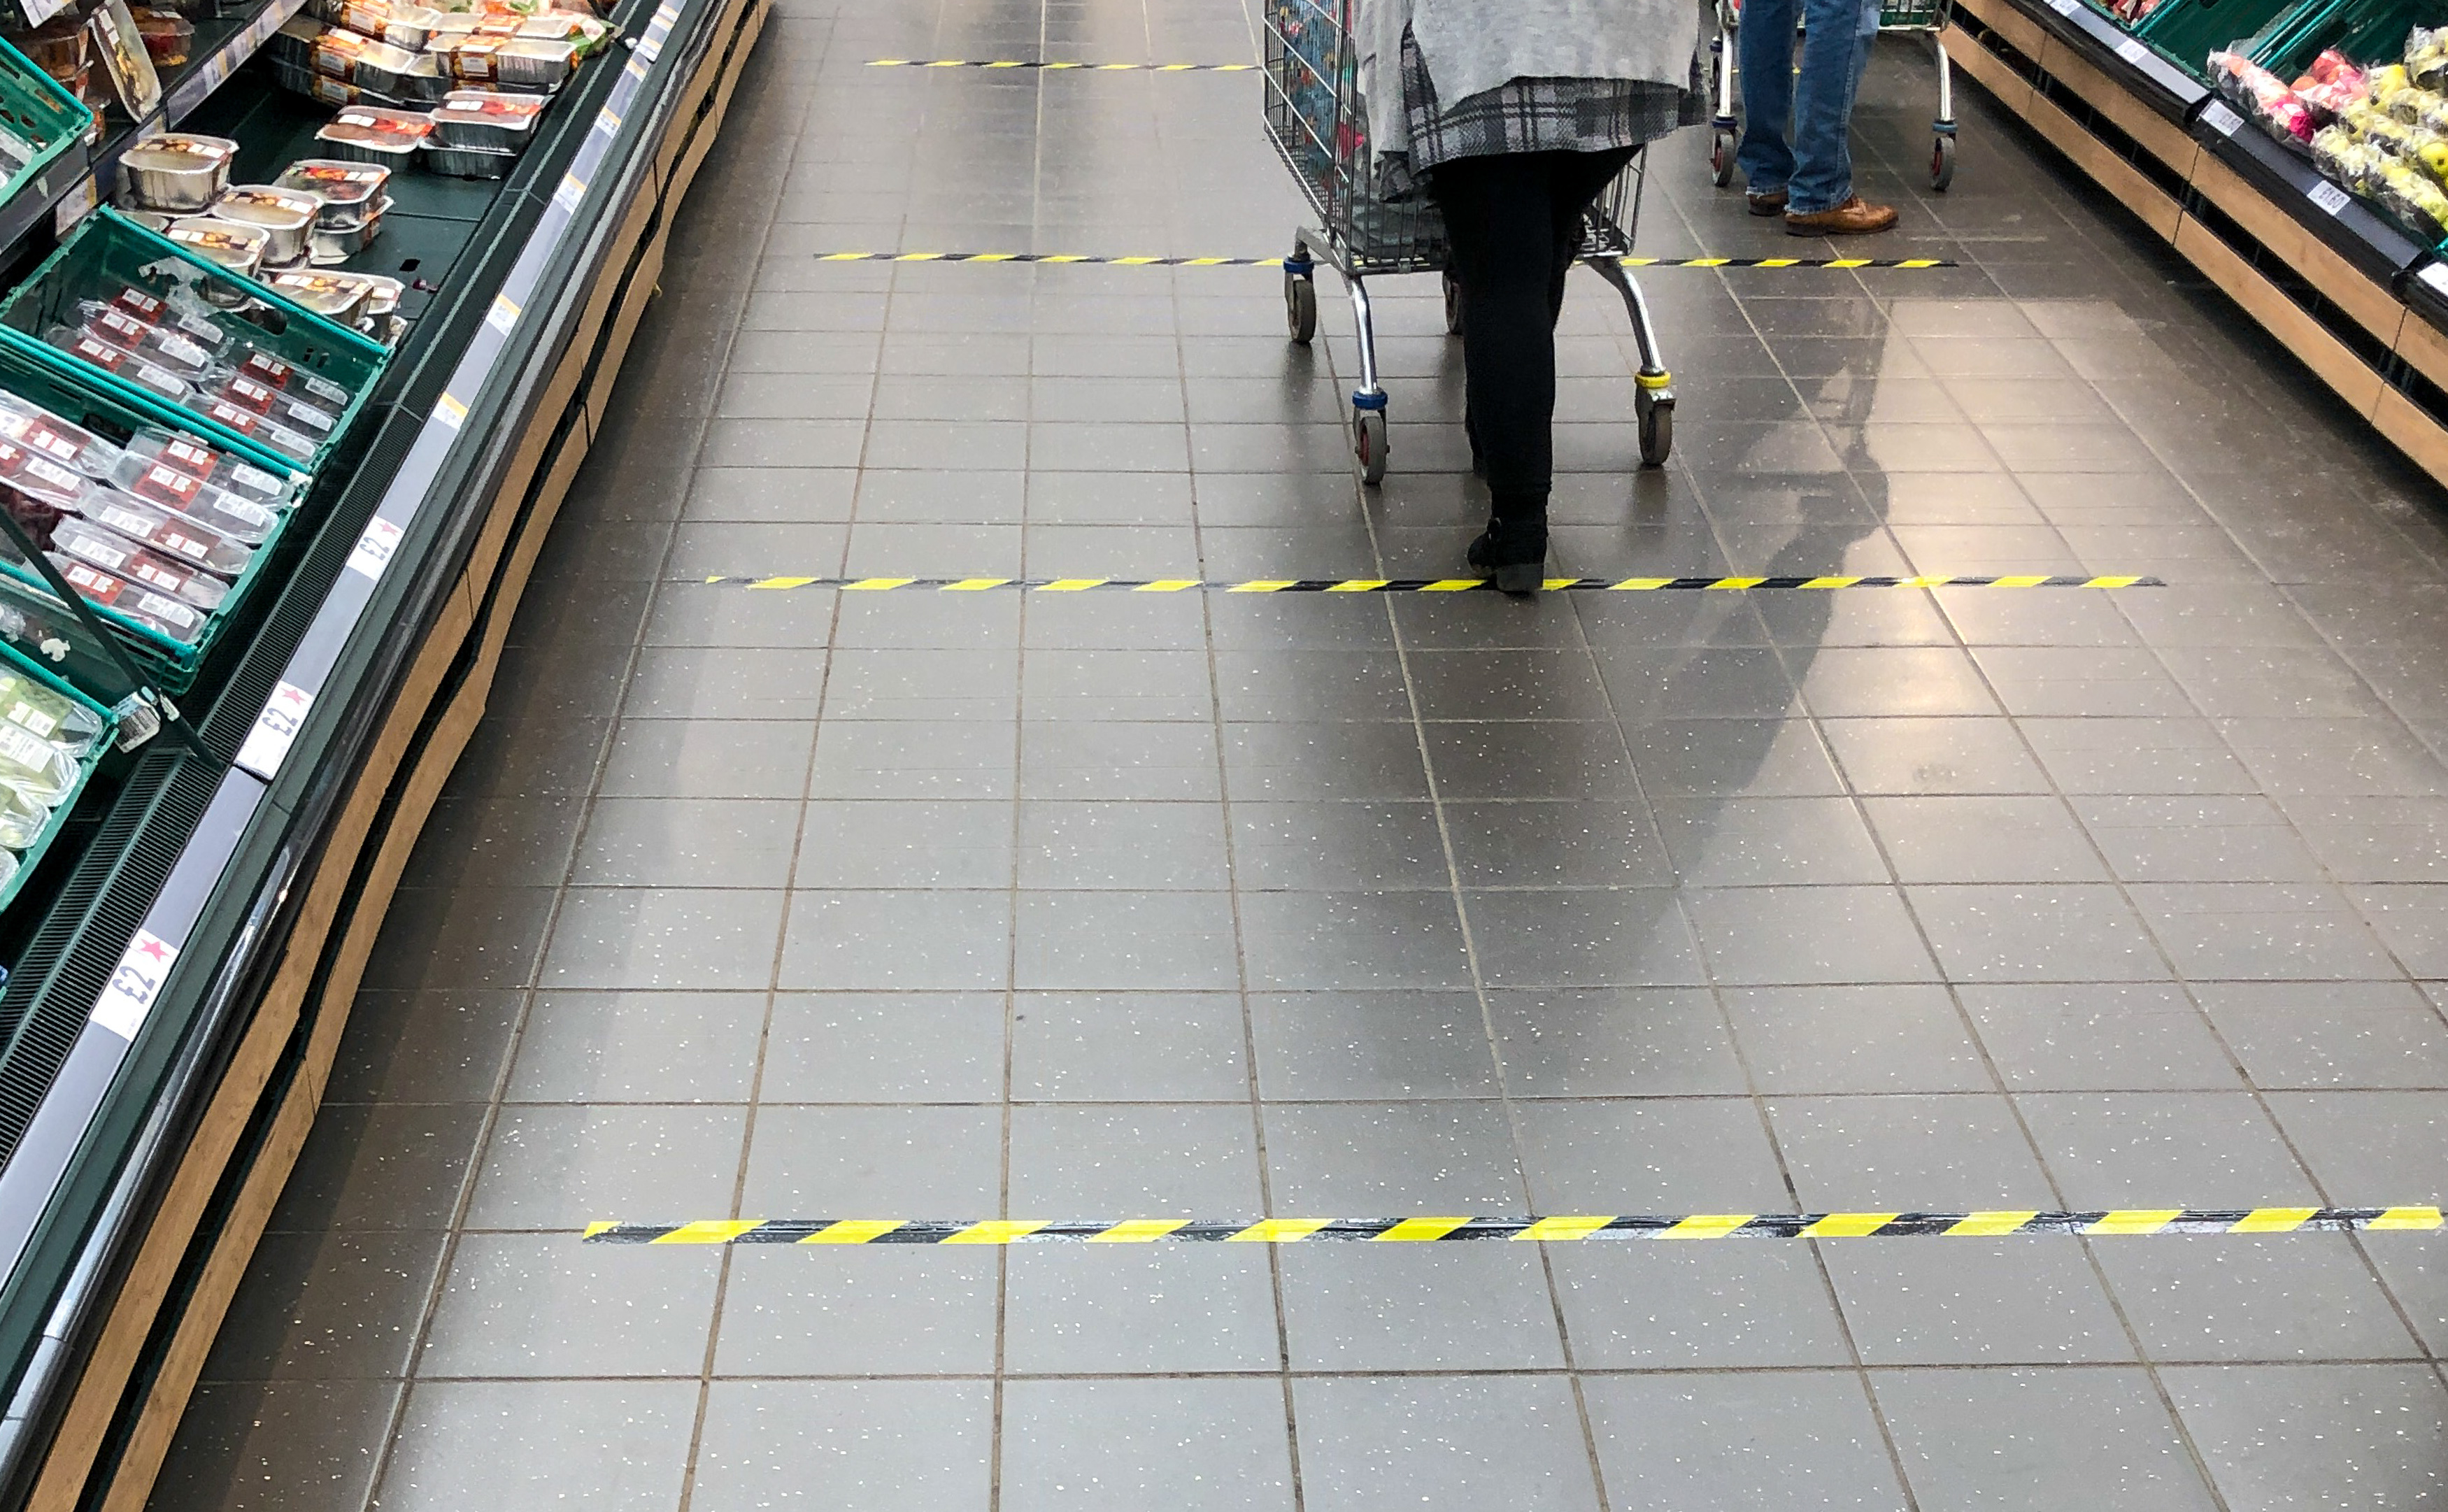 Tape marks out 2 metre sections on the floor to implement social distancing measures at a Tesco store in Peterborough, after Prime Minister Boris Johnson has put the UK in lockdown to help curb the spread of the coronavirus.